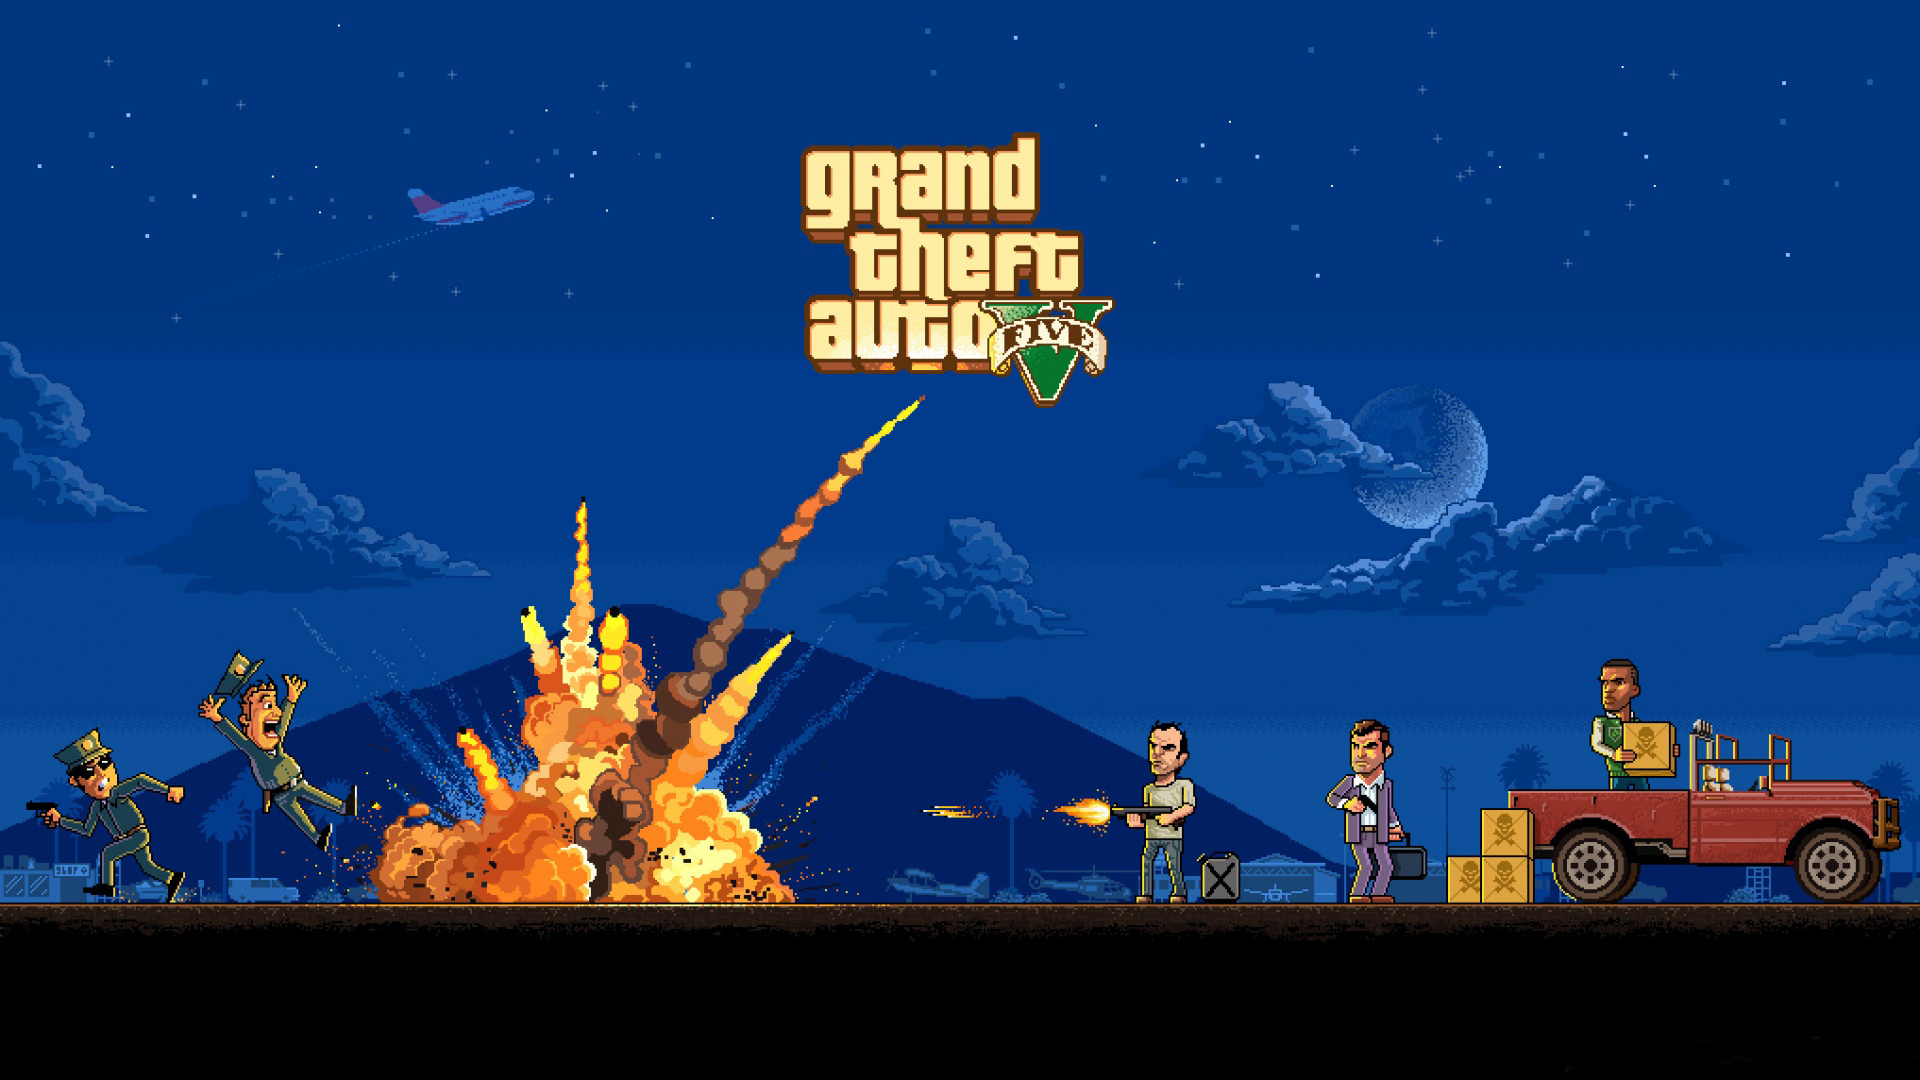 GTA V PC release waiting I will be posting a lot of cool GTA related 1920x1080